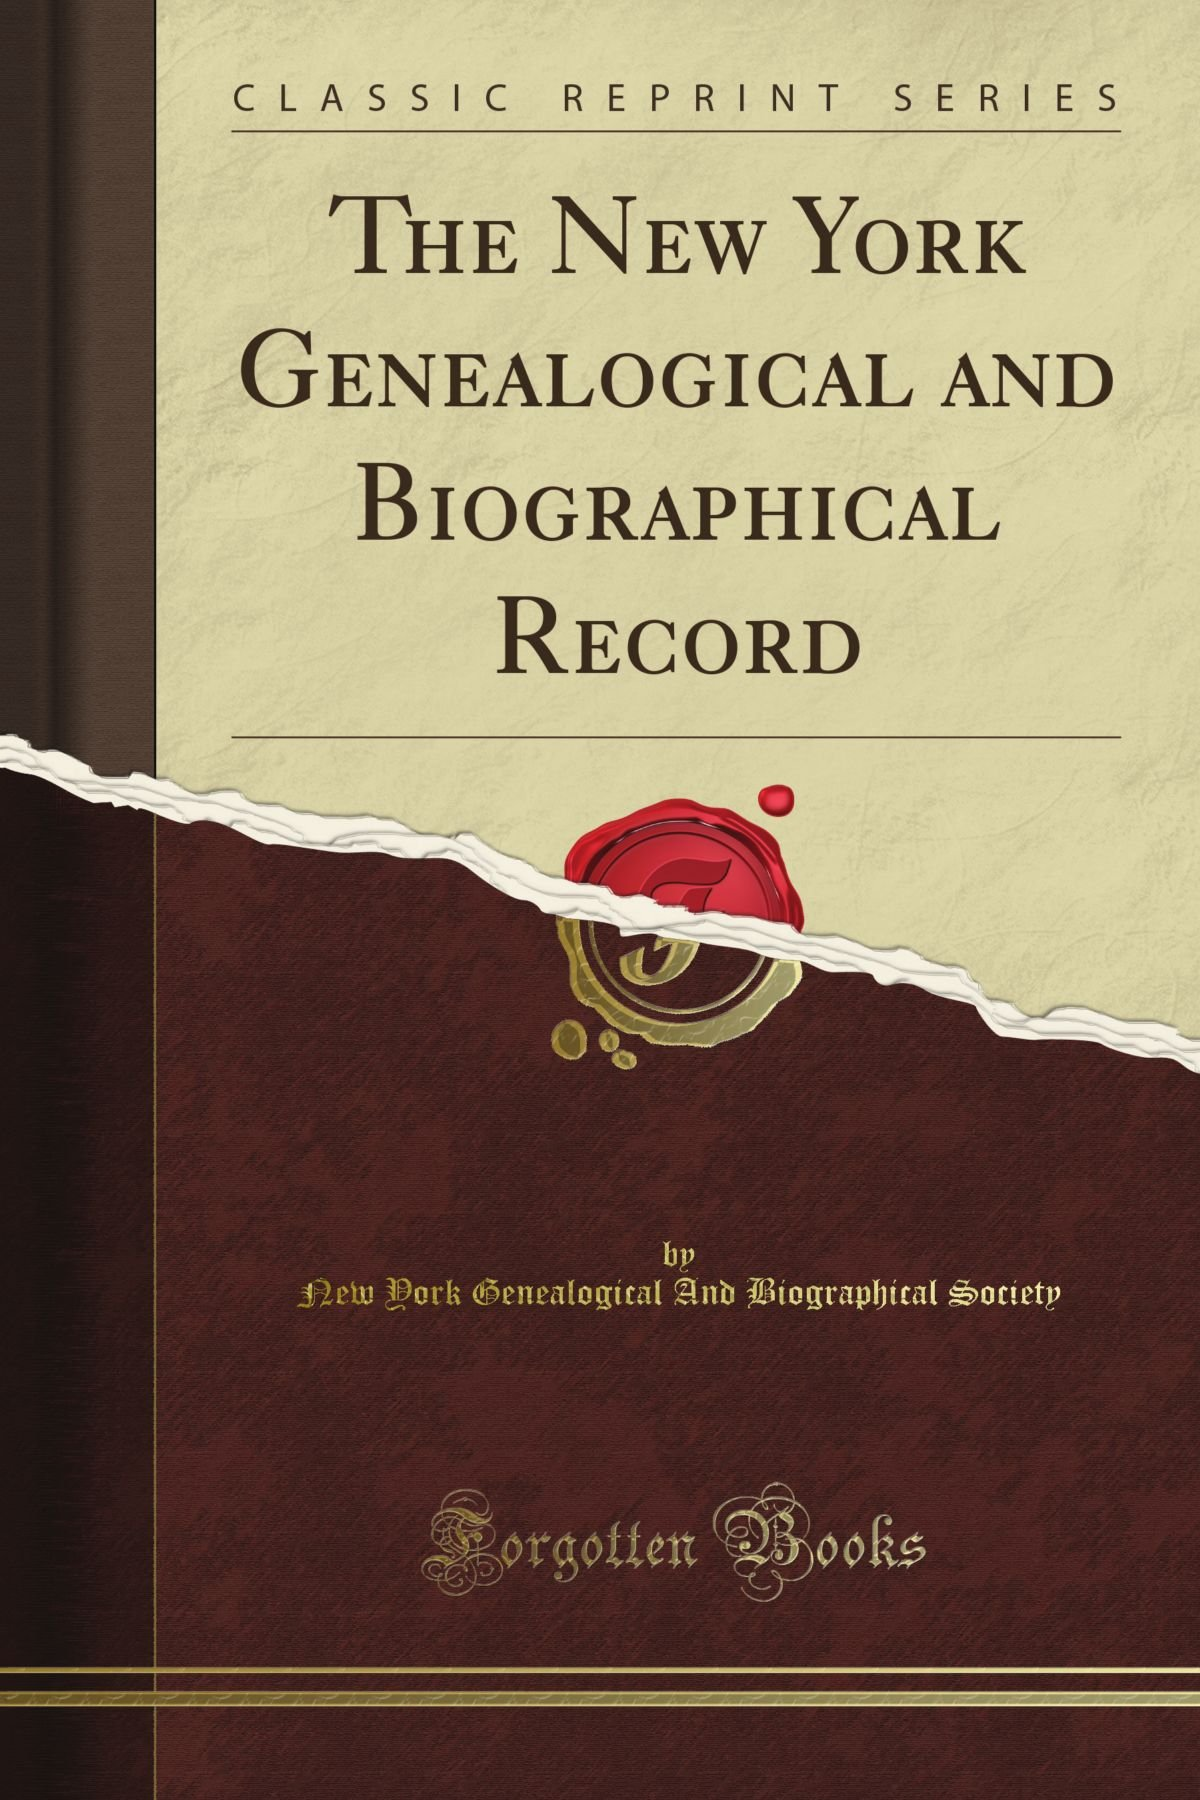 The New York Genealogical and Biographical Record (Classic Reprint) (Volume 1)